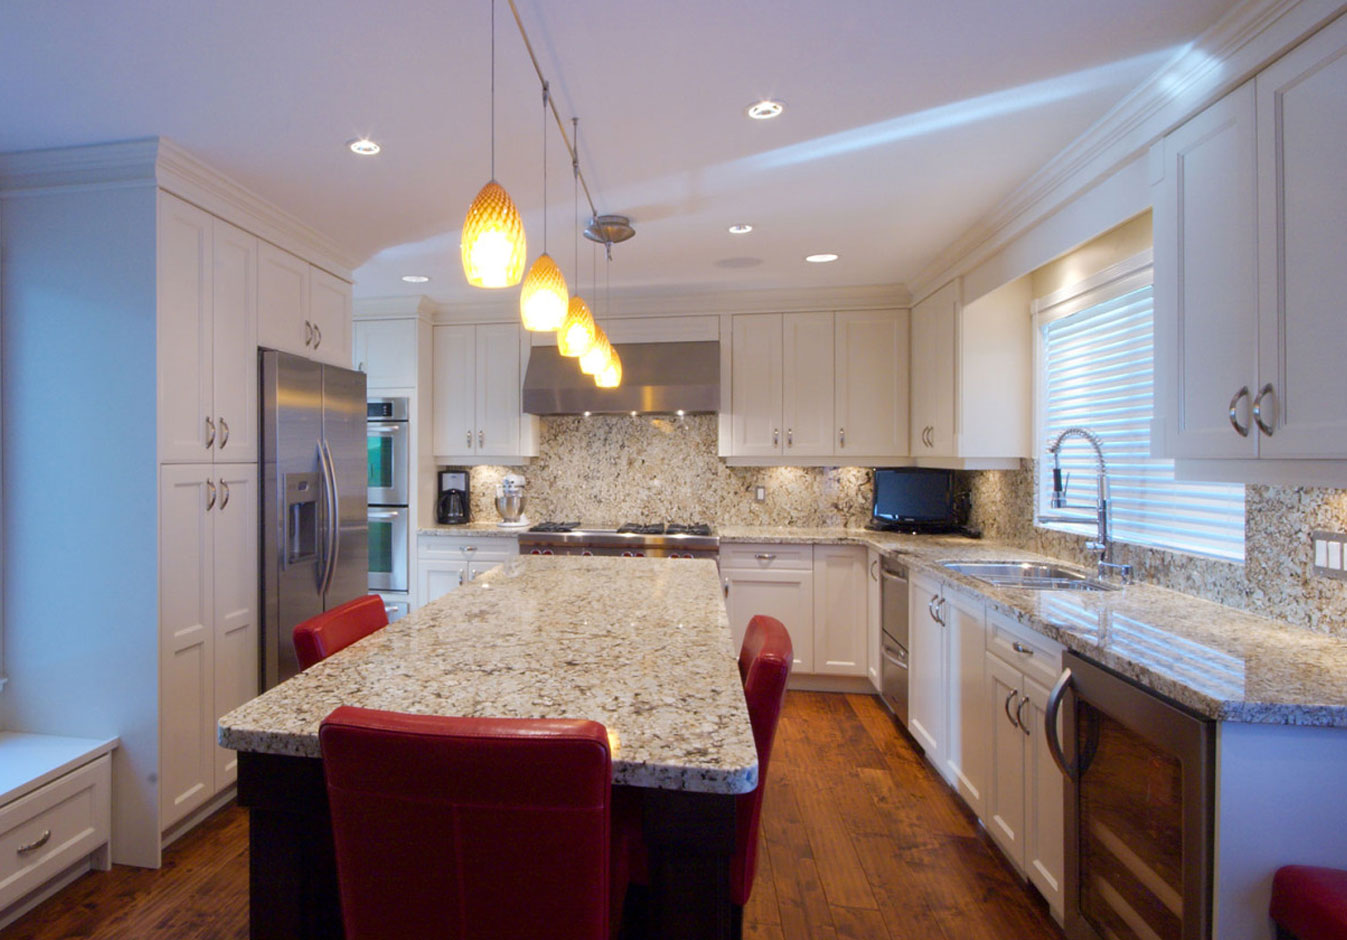 Three Home Design Styles That Are in Fashion Right ... on luxury homes, avalon homes, tennessee homes,